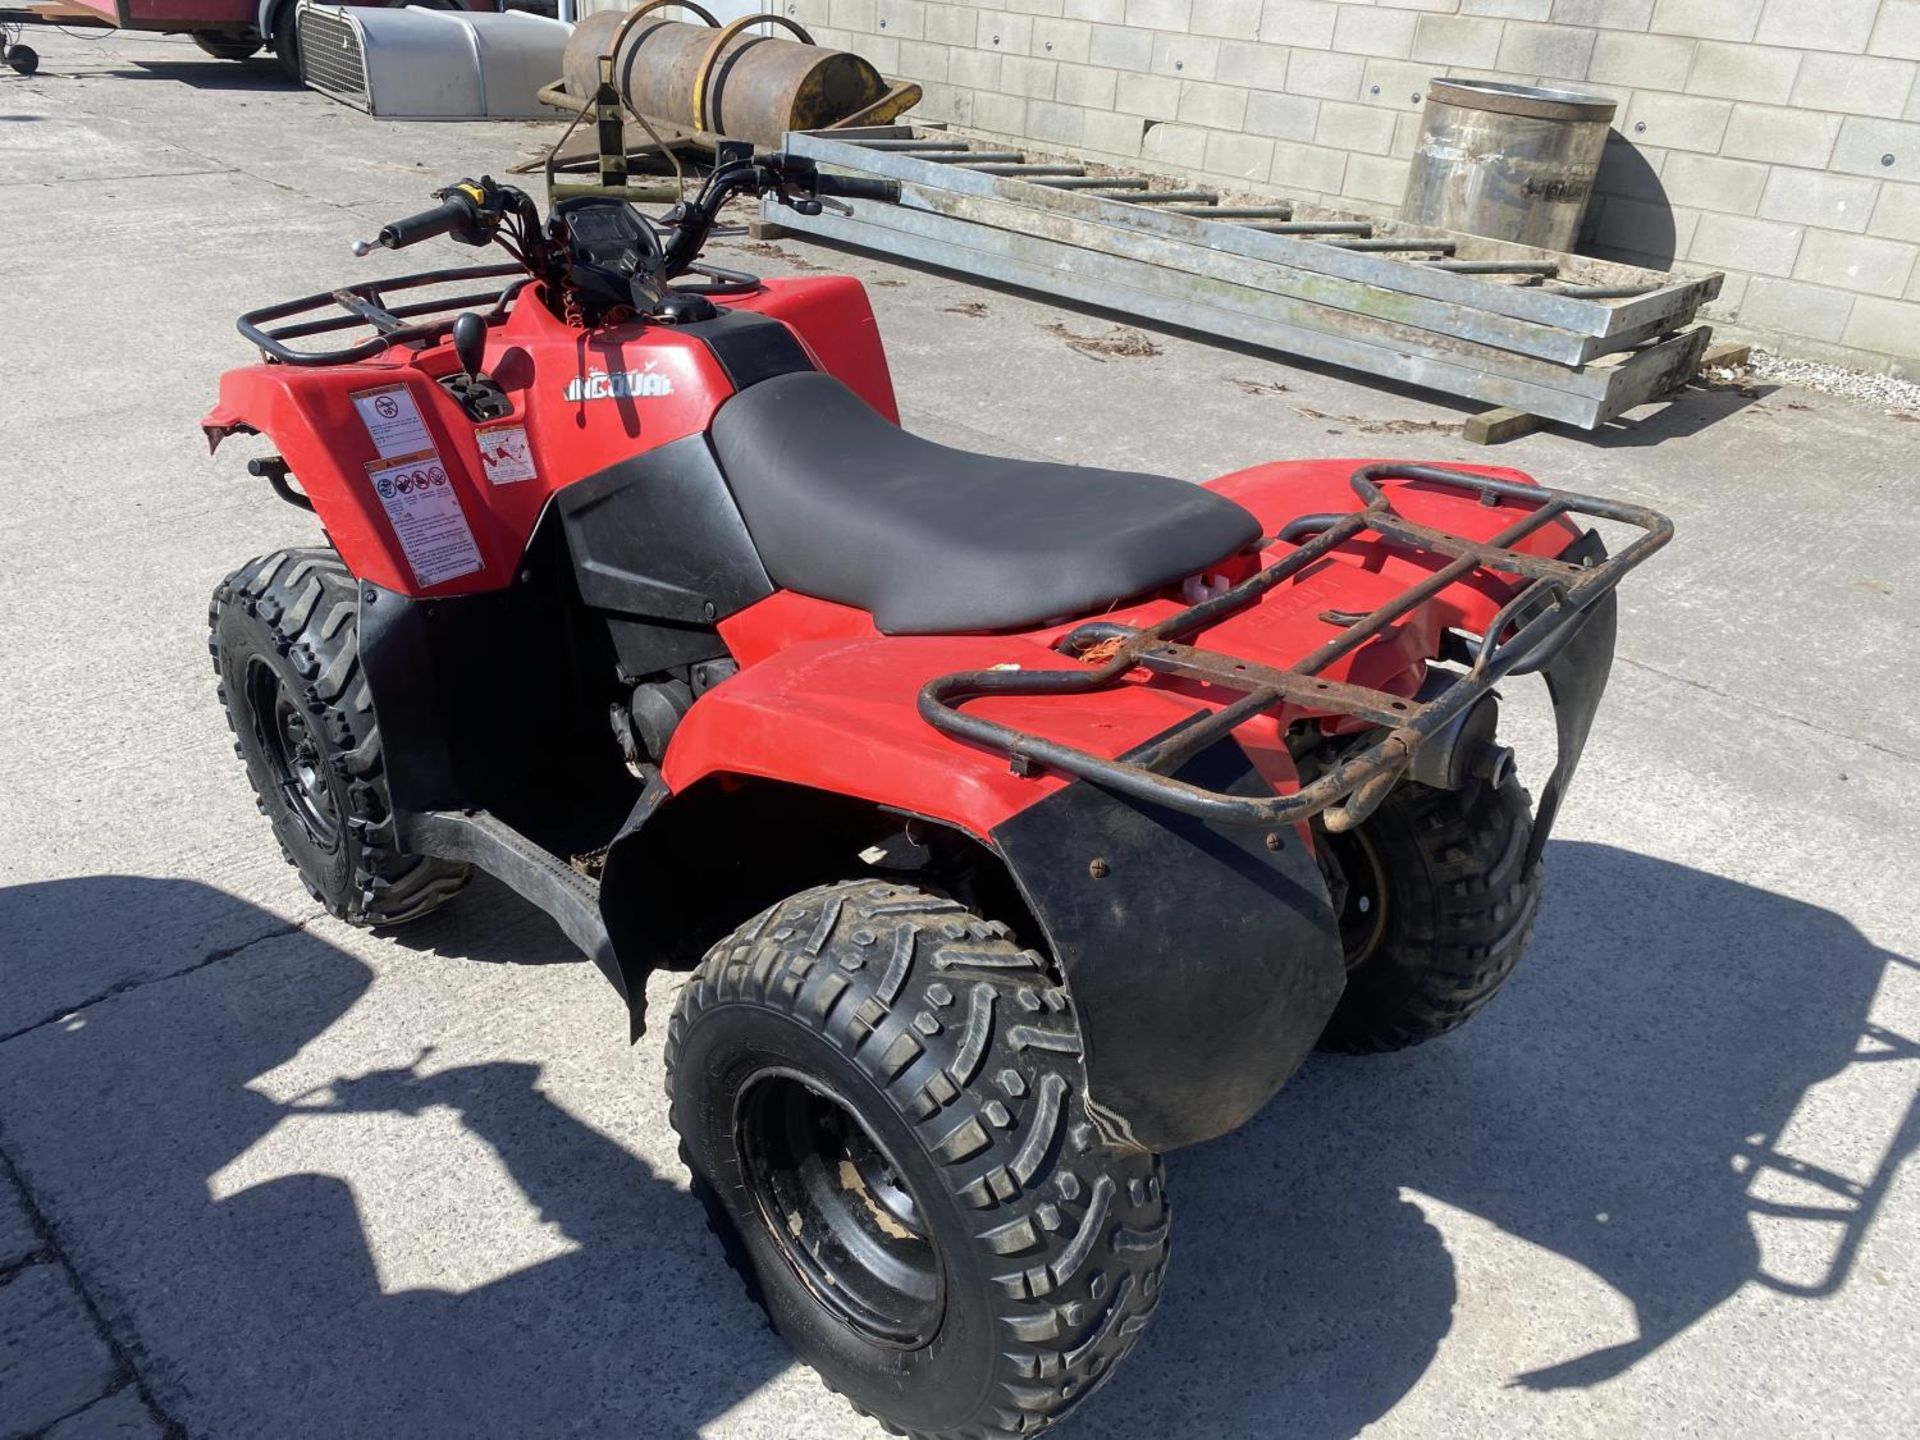 A 2013 SUZUKI KING QUAD, 400 CC AUTOMATIC - SEE VIDEO OF VEHICLE STARTING AND RUNNING - NO VAT - Image 10 of 12